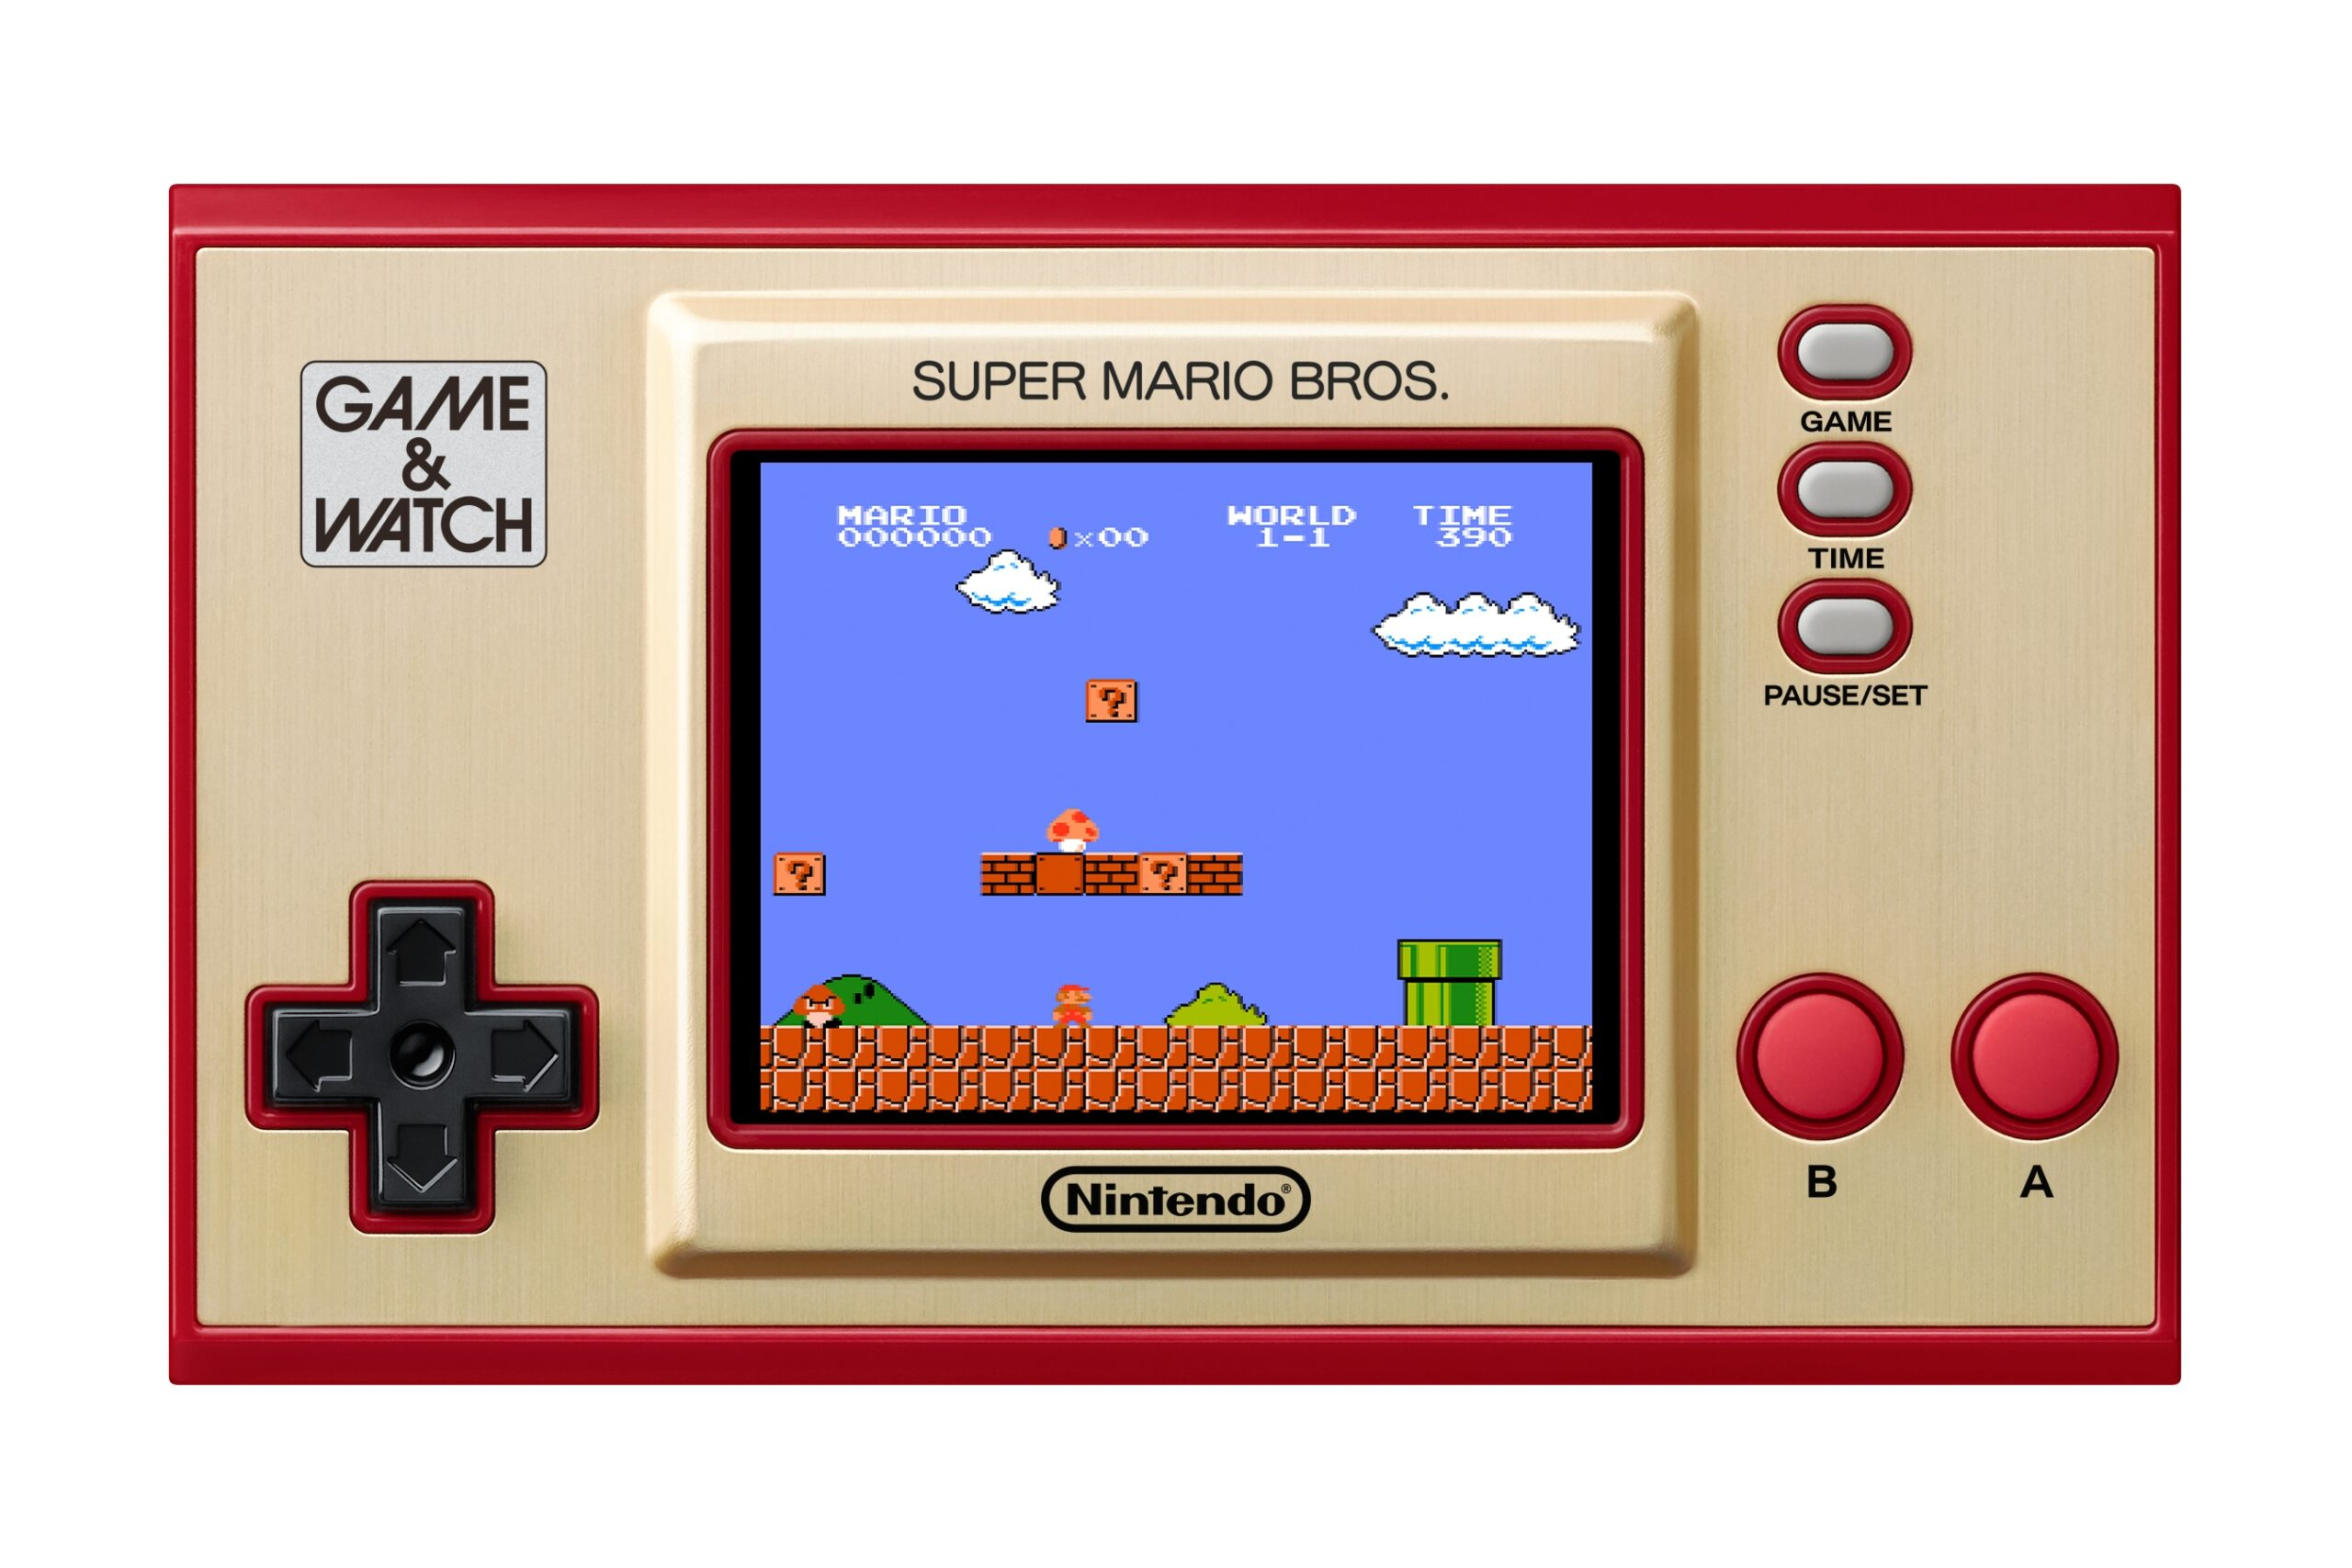 Game-and-Watch-Super-Mario-Bros_2020_09-03-20_006